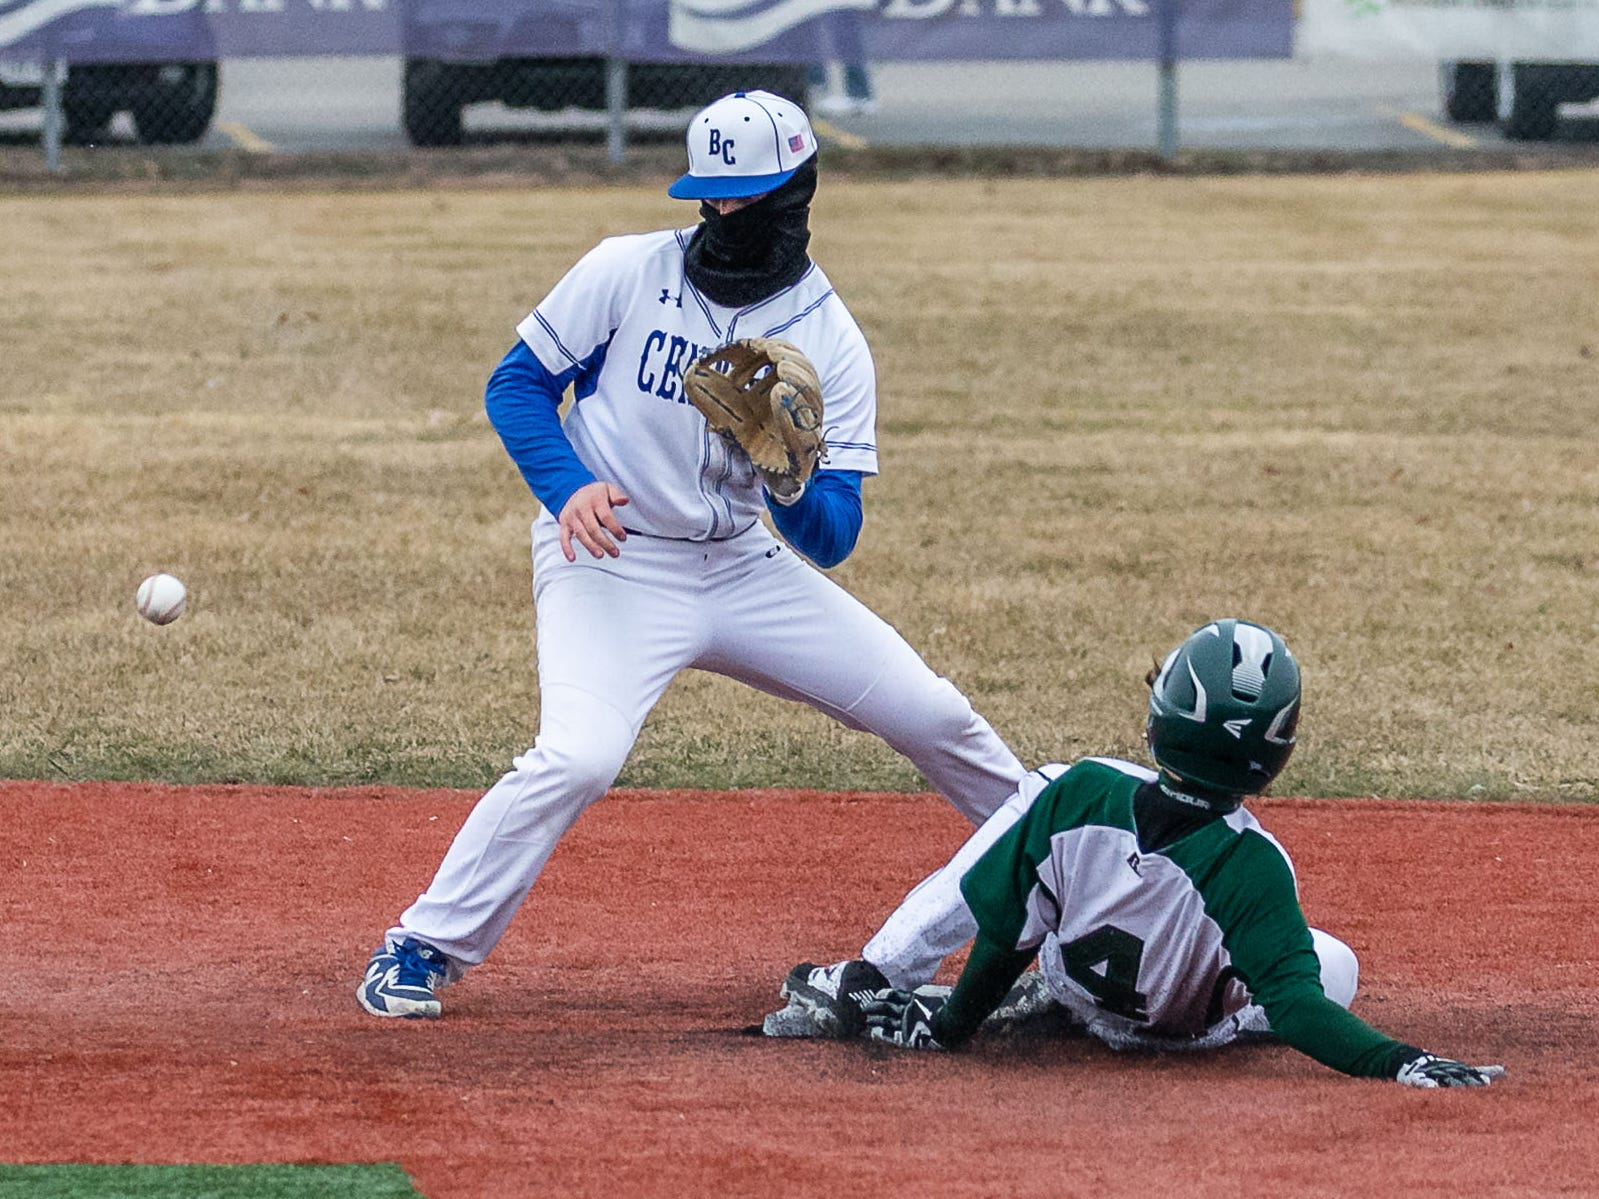 Wauwatosa West's Colton Scharf (4) steals second base as Brookfield Central shortstop Sal Gambatese waits on the throw at Brookfield Central on Thursday, April 4, 2019.